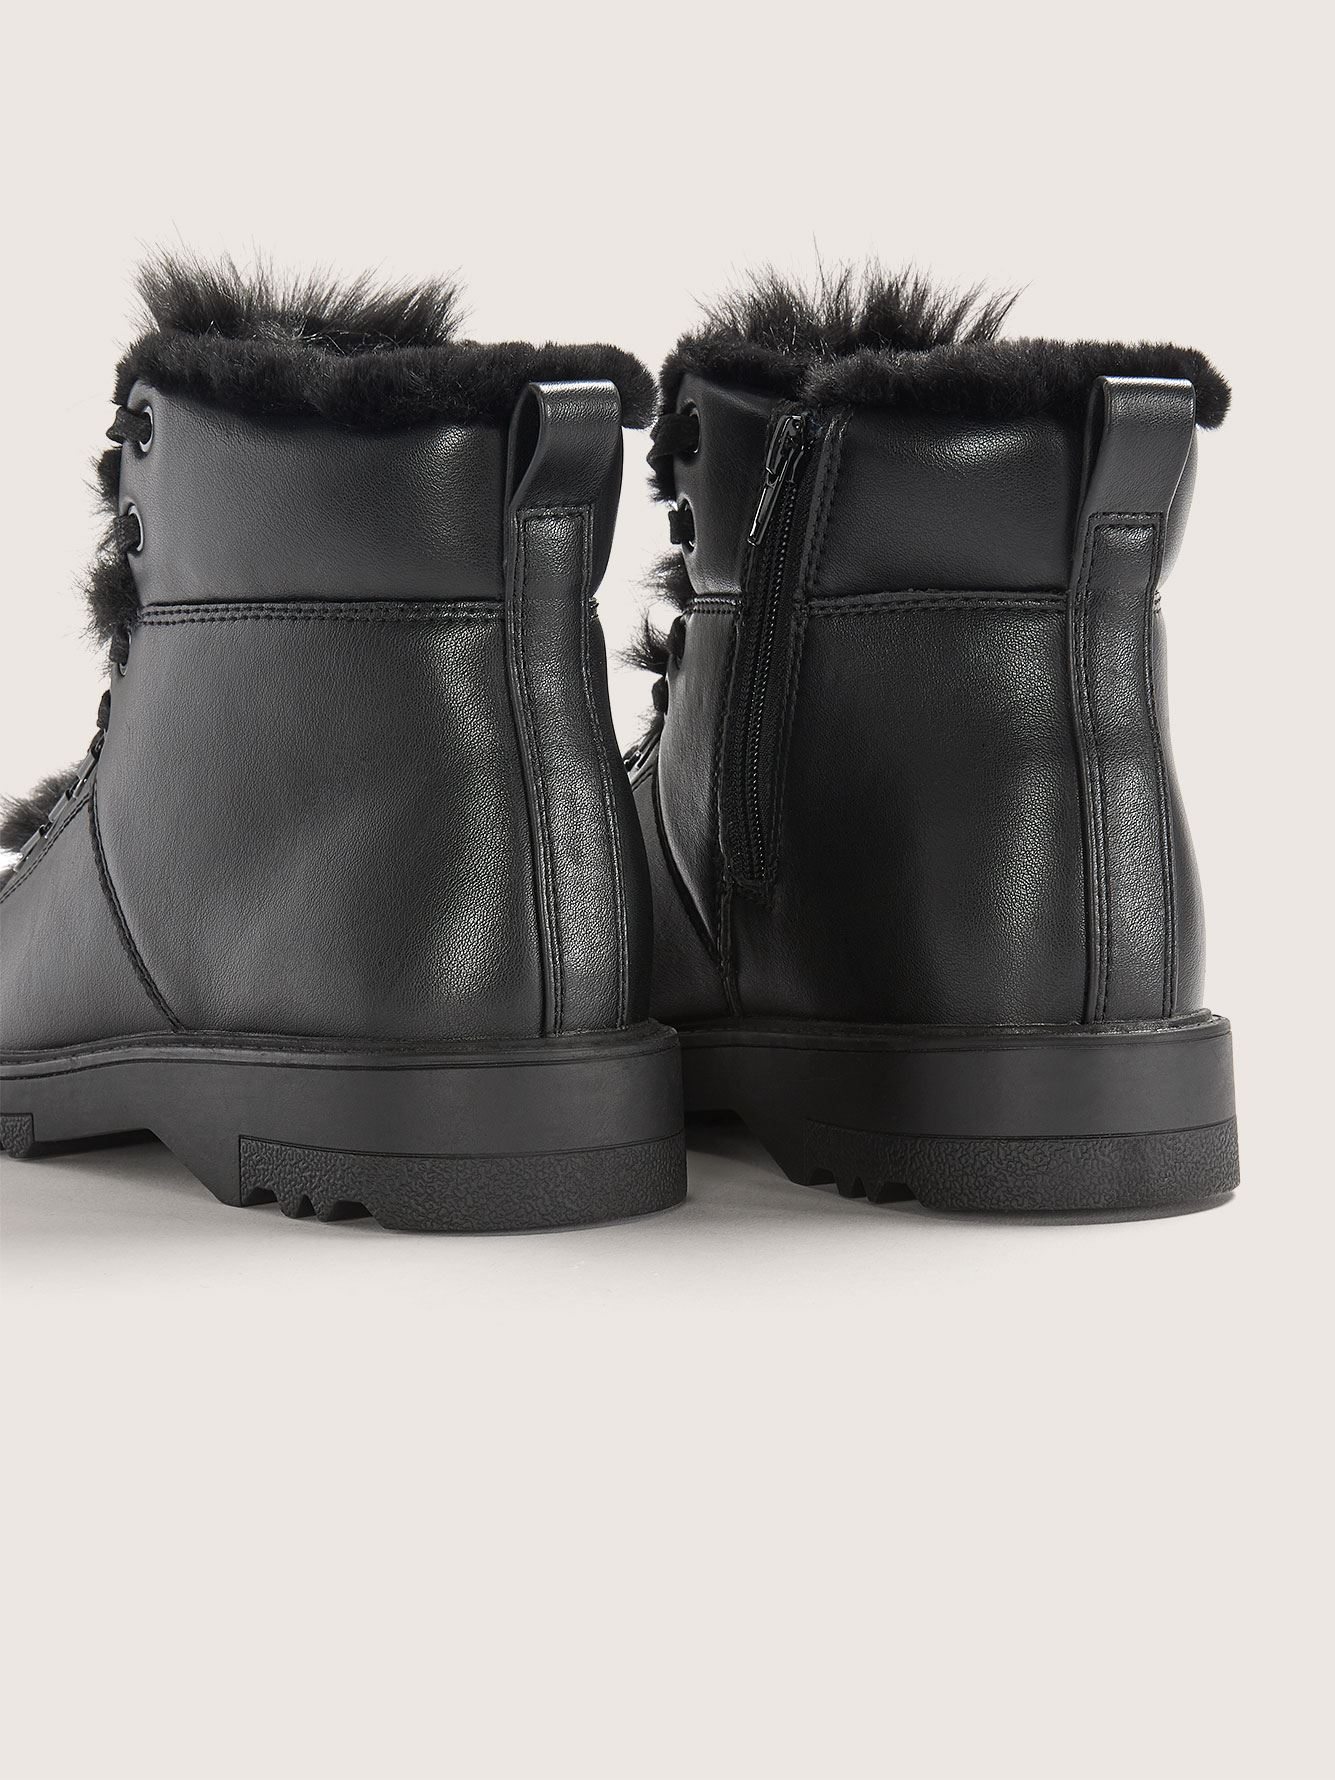 Wide Waterproof Winter Boot with Faux Fur Trim - Addition Elle